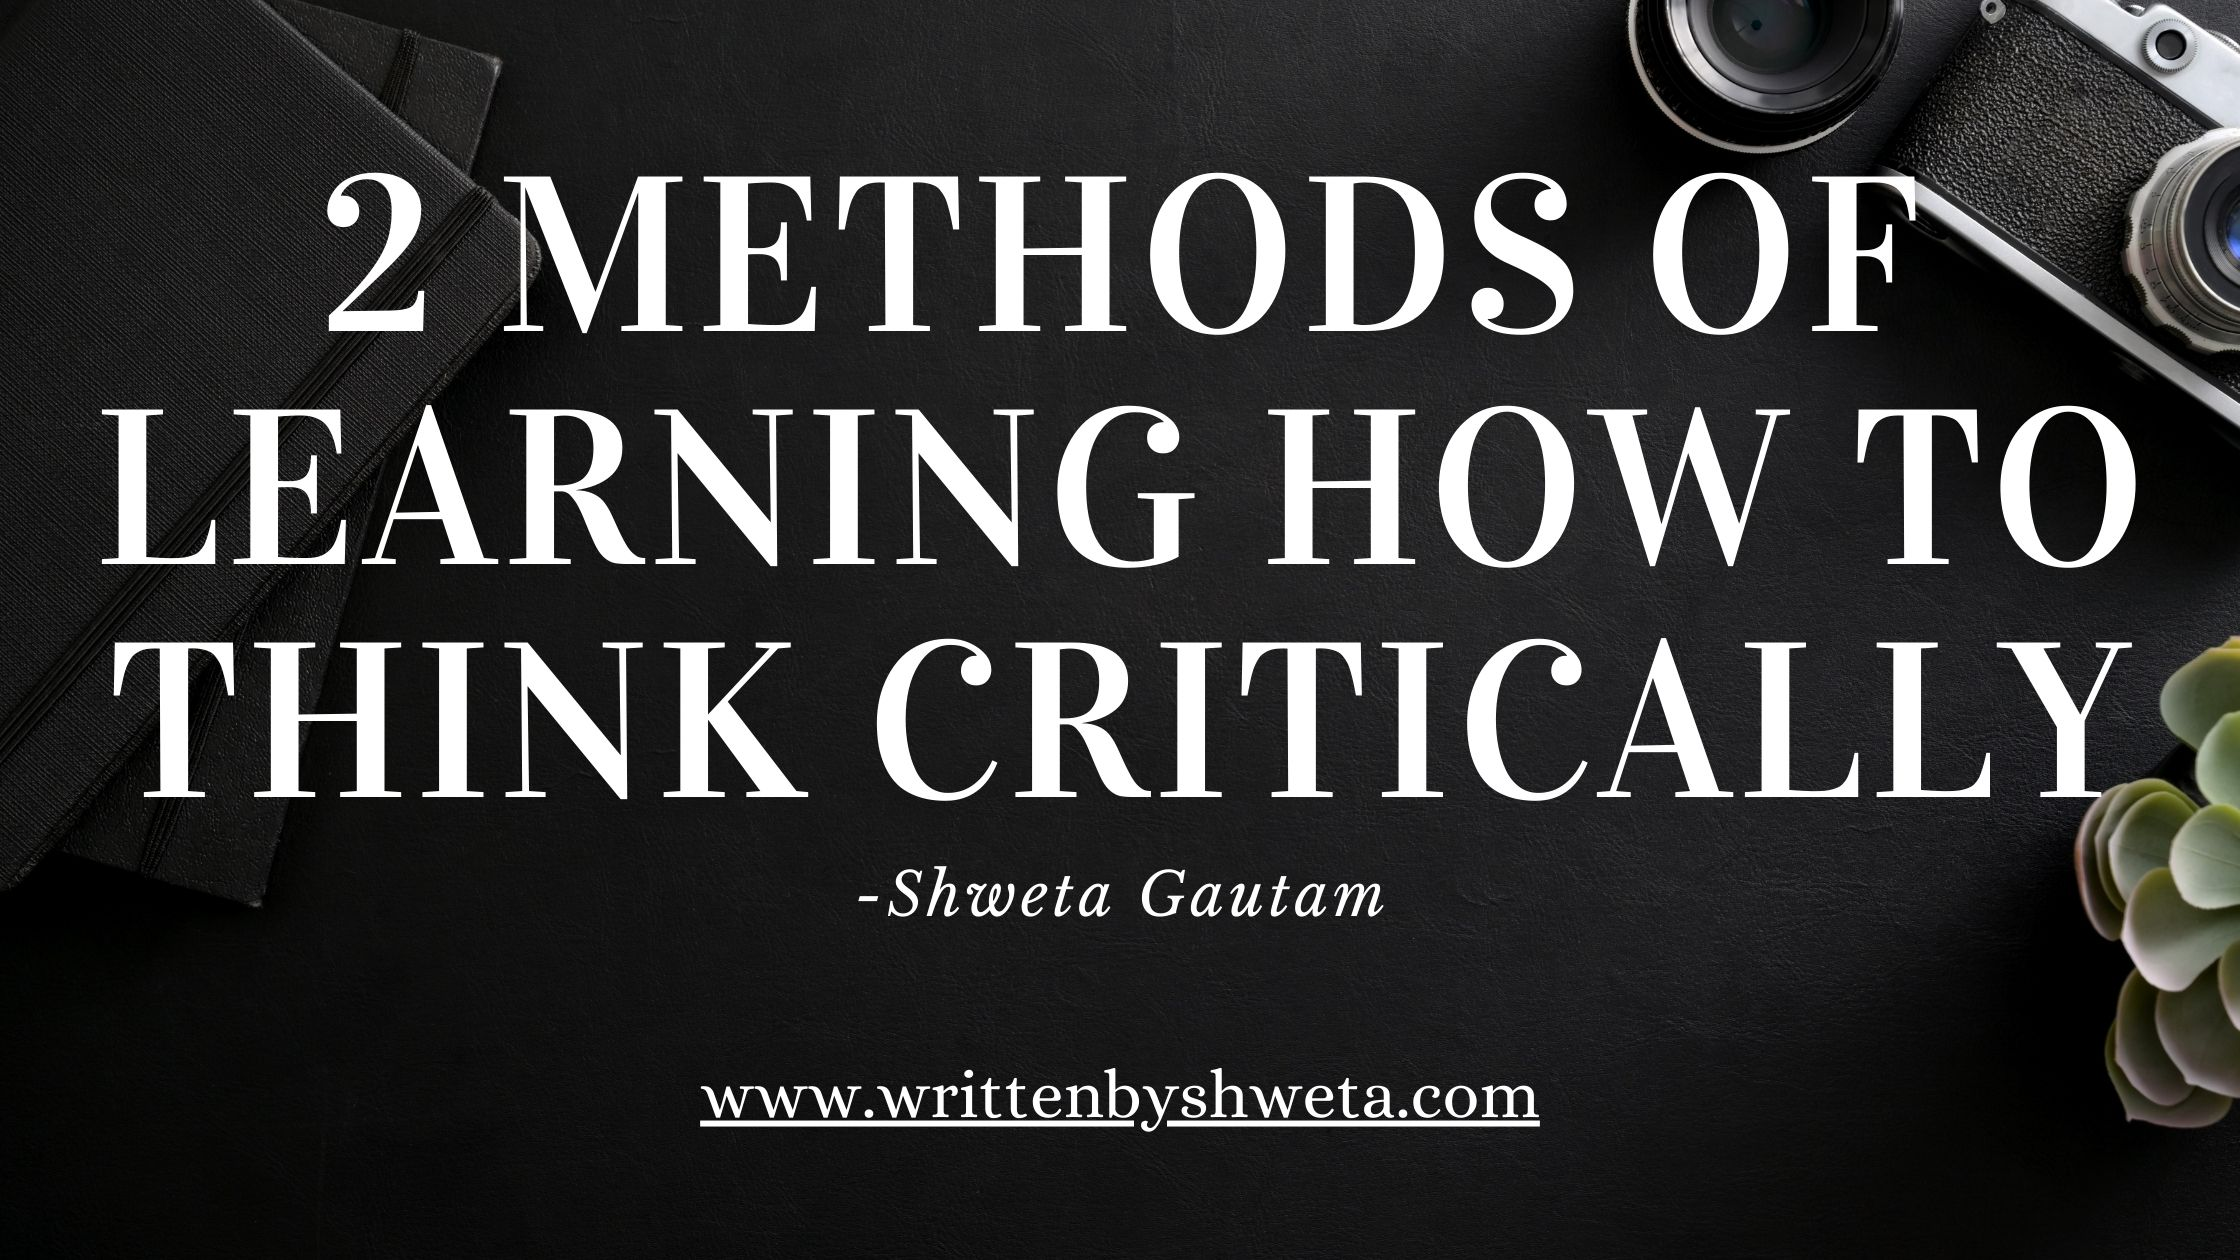 You are currently viewing 2 METHODS OF LEARNING HOW TO THINK CRITICALLY